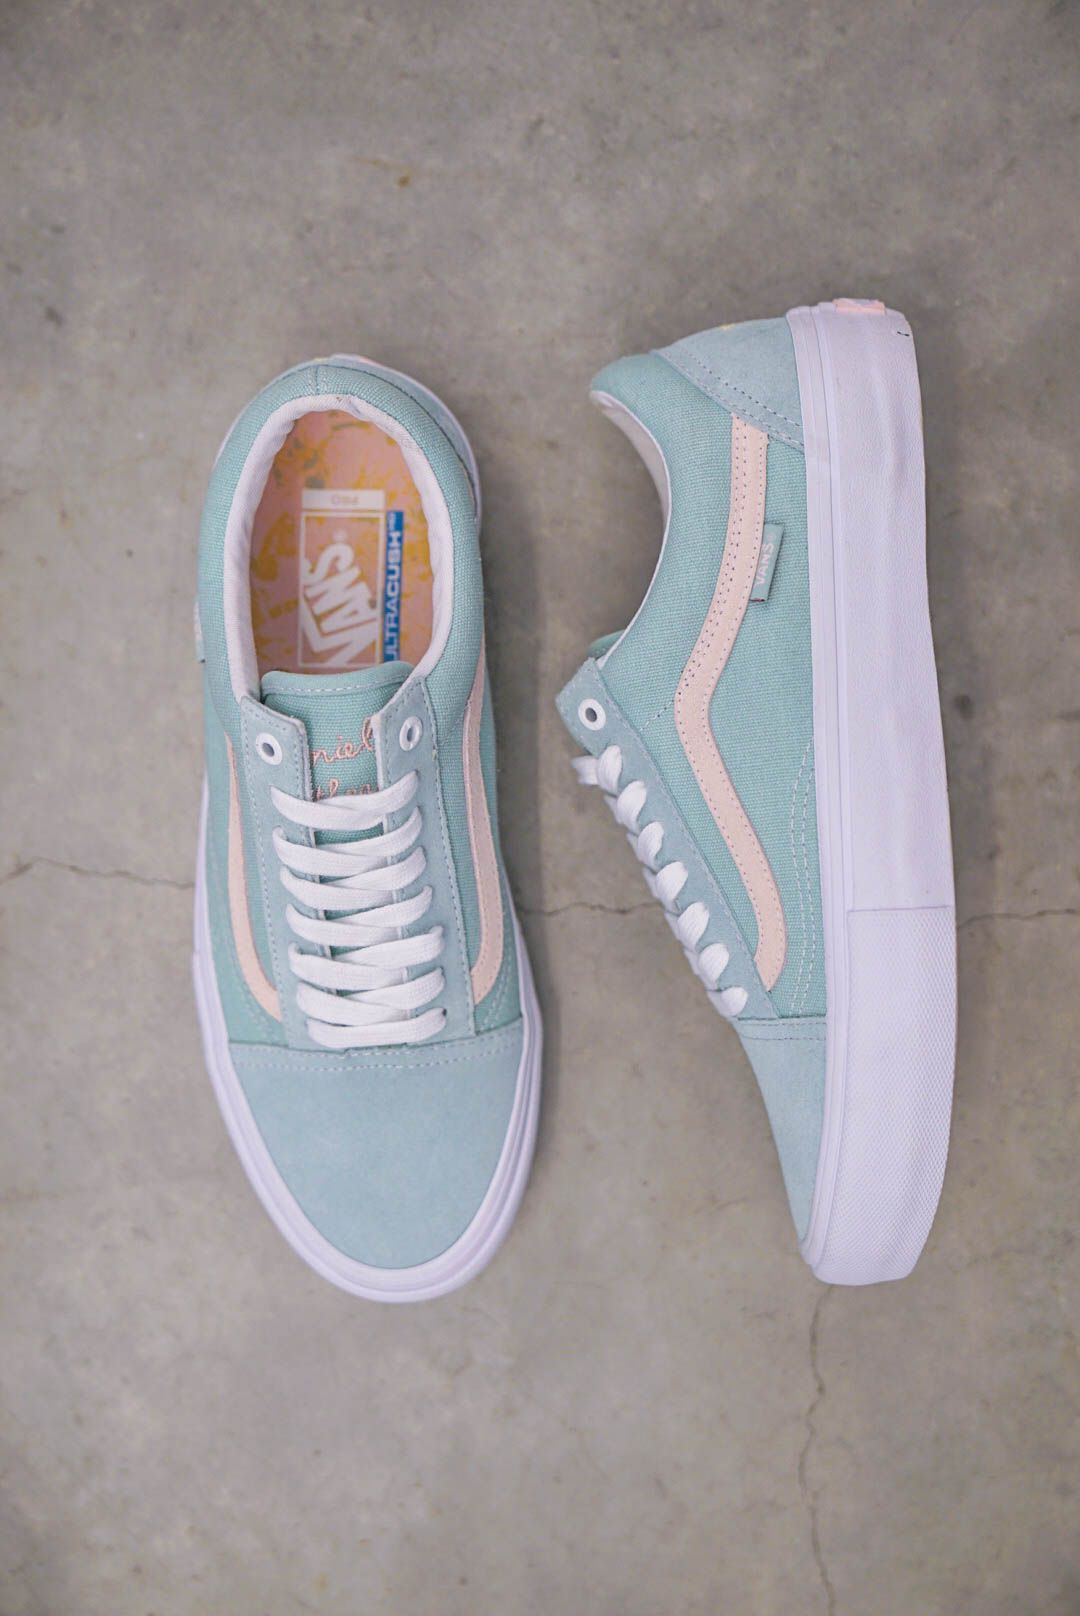 118804195b Vans Old Skool Pro Dan Lu Harbor Grey & Pearl Skate Shoes in 2019 ...